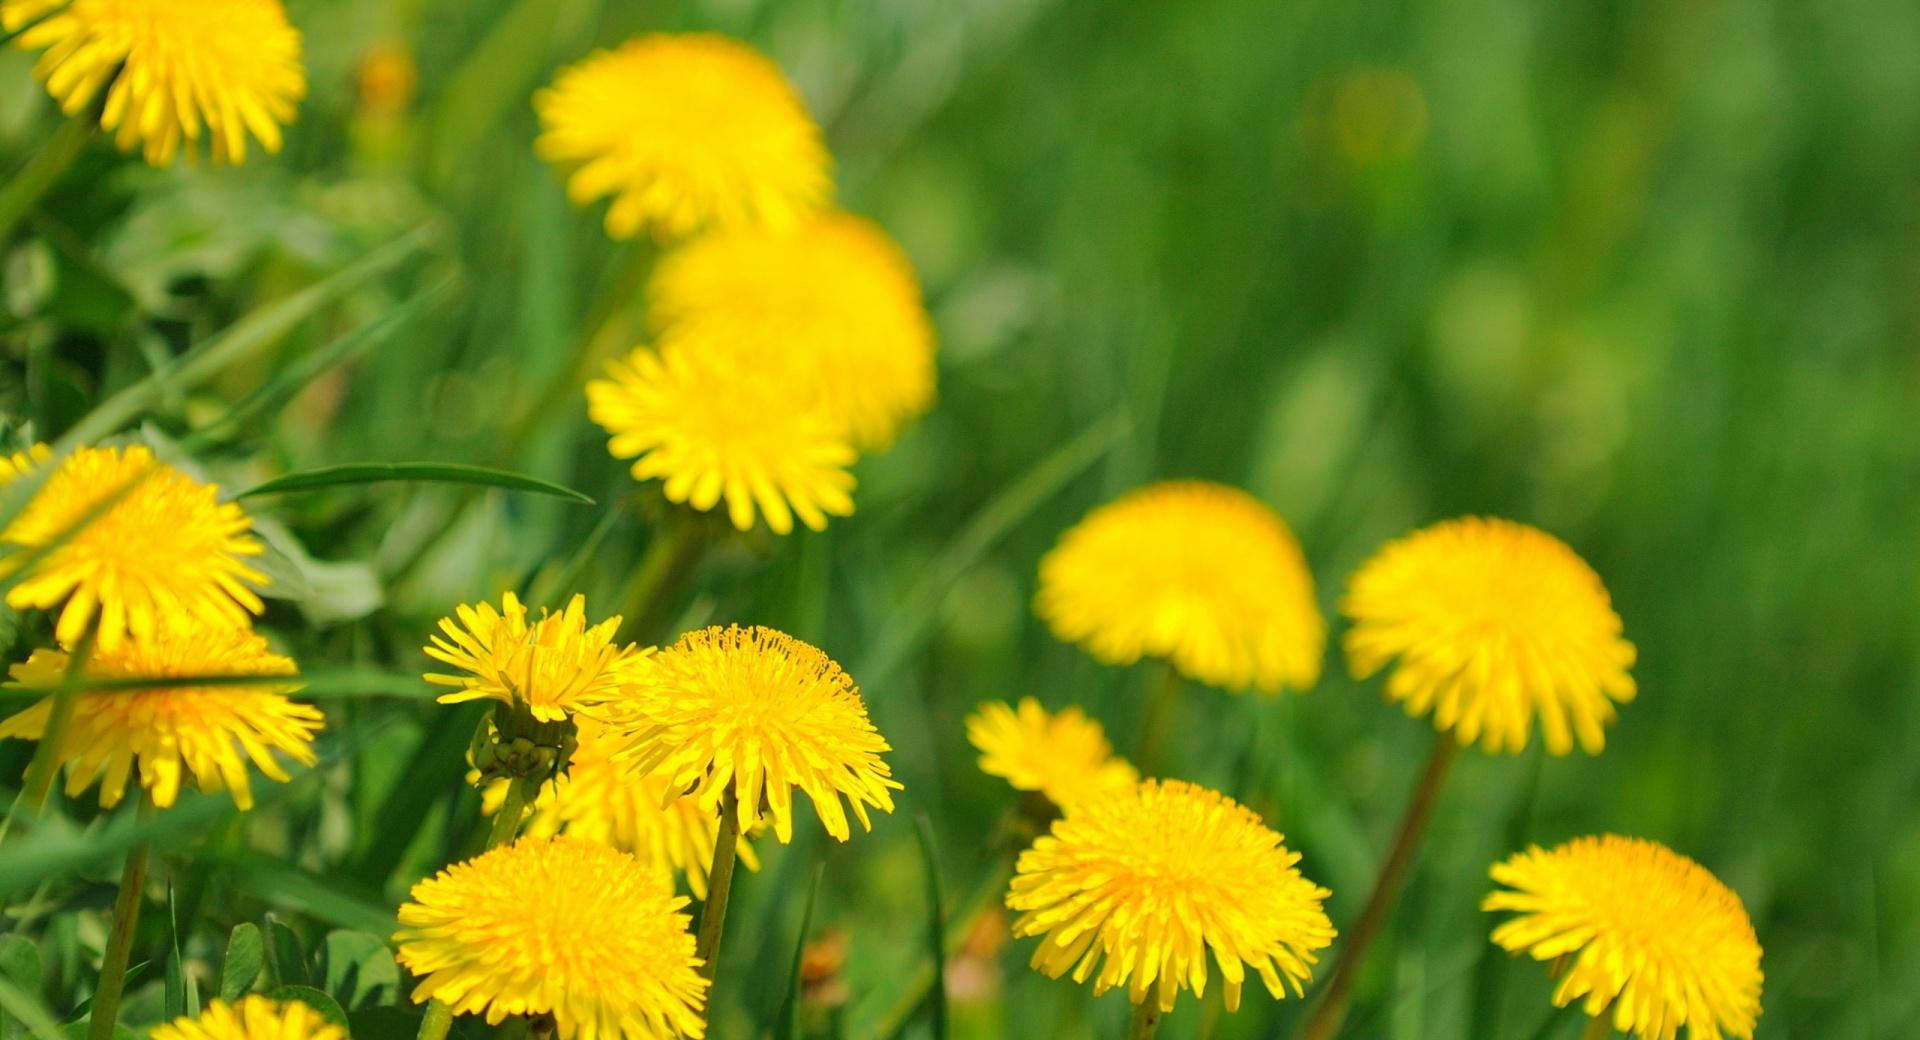 Dandelions wallpapers HD quality